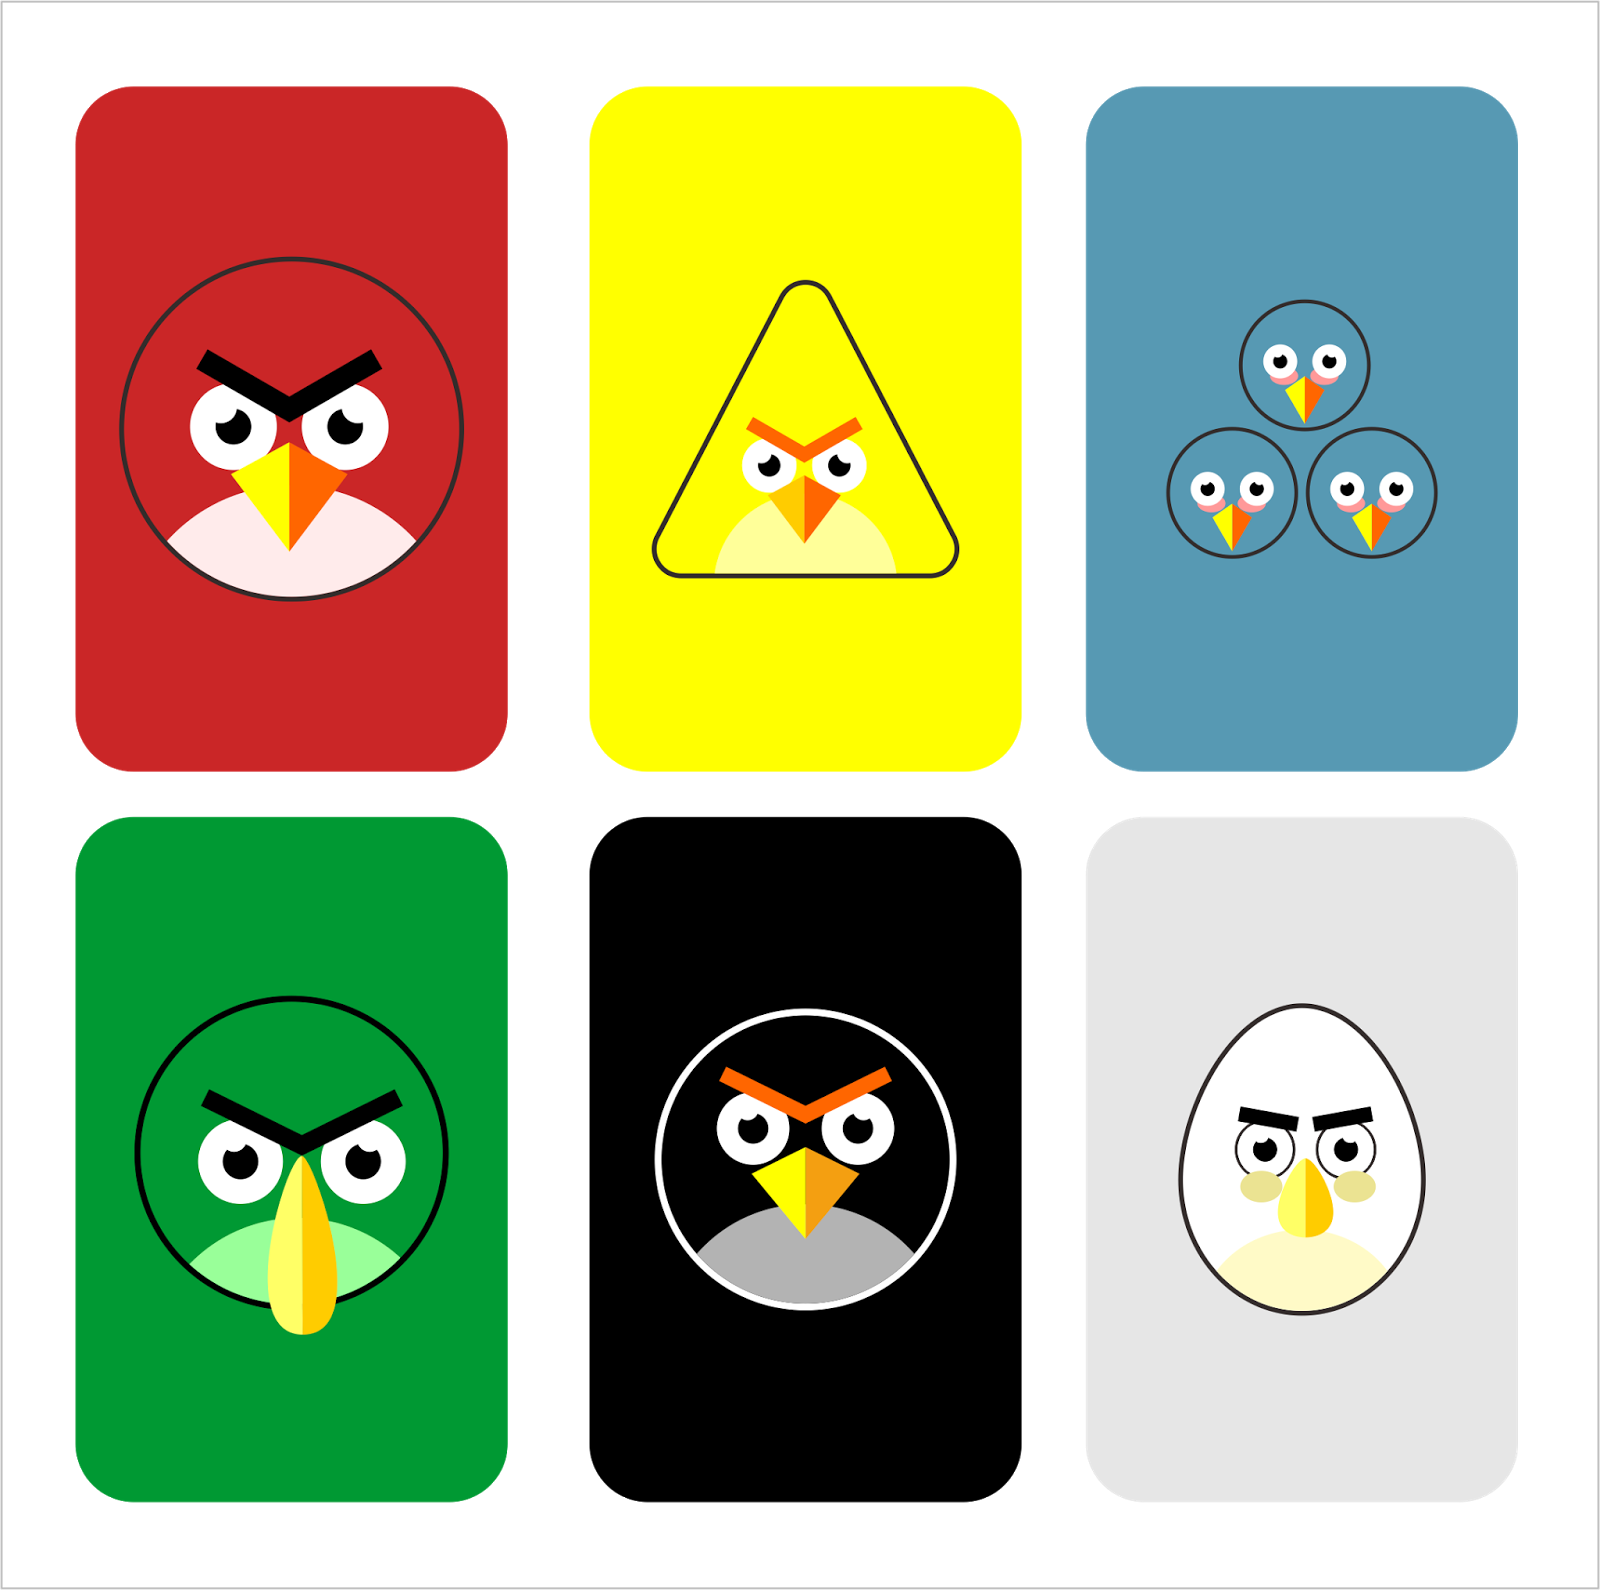 Menggambar Angry Bird Dengan Coreldraw Tutorial Grafisku Photoshop Coreldraw Bahasa Indonesia